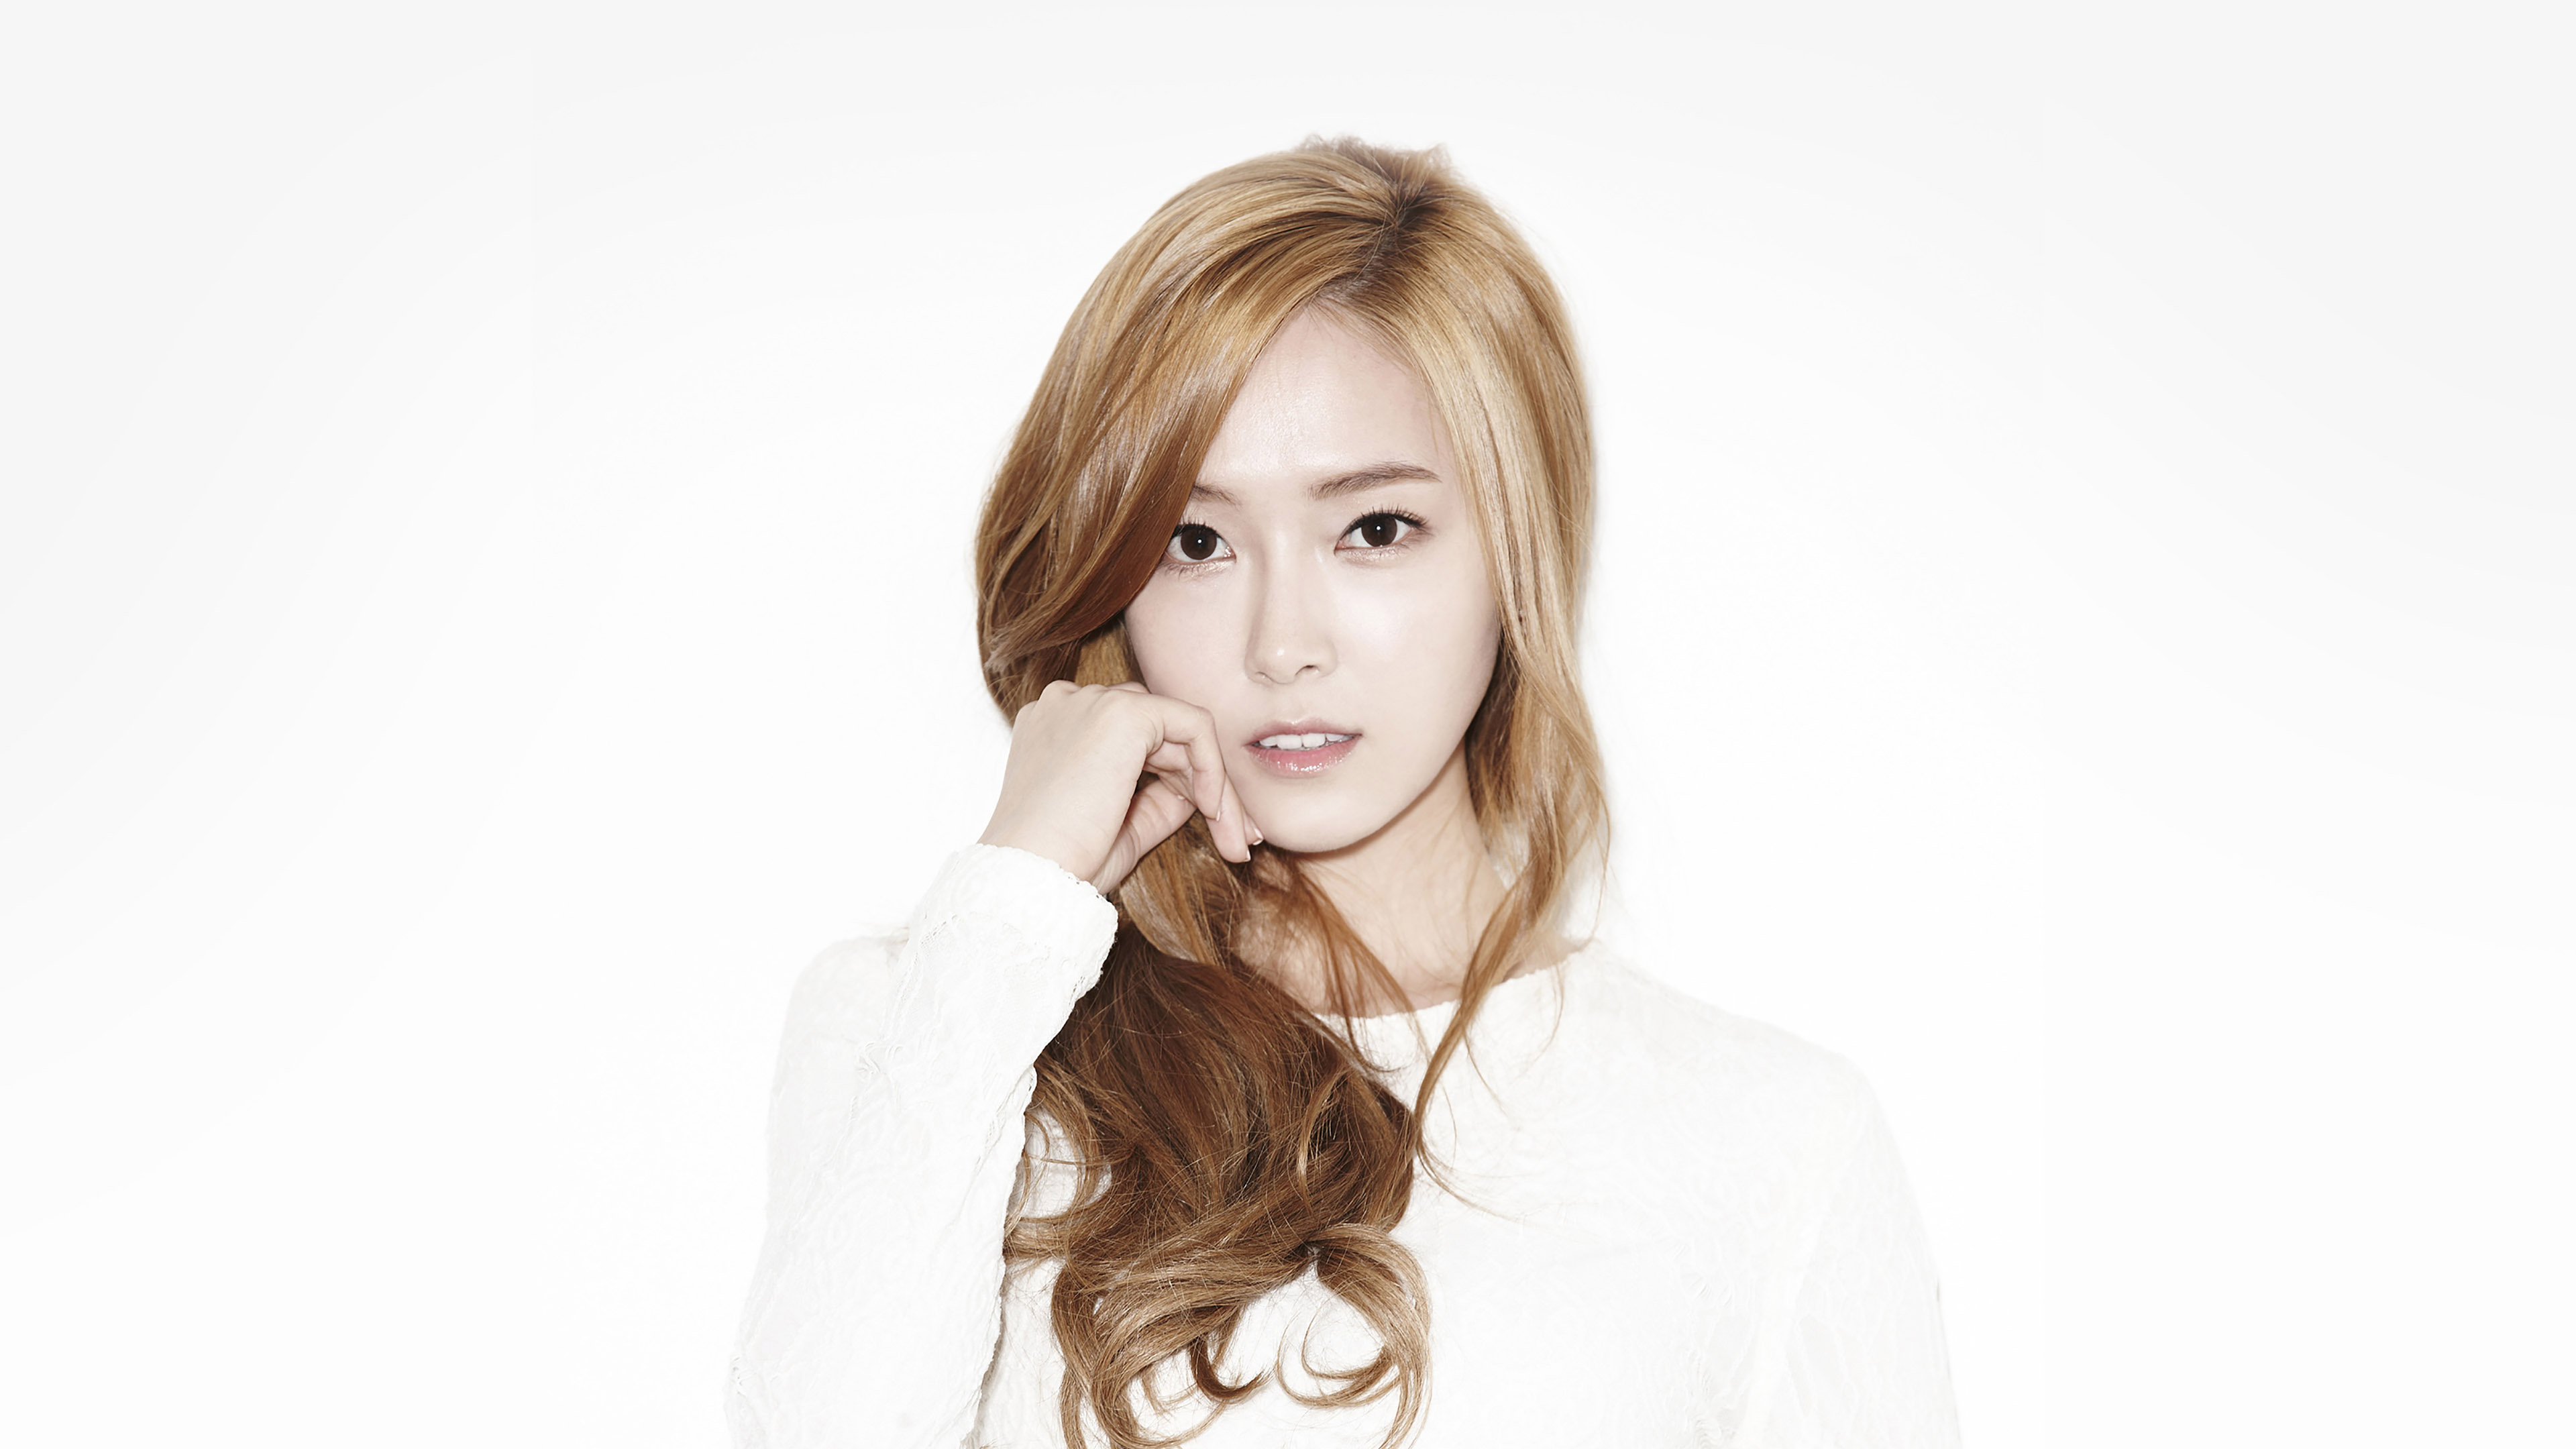 Ha73 Wallpaper Jessica Snsd Kpop Papers Co